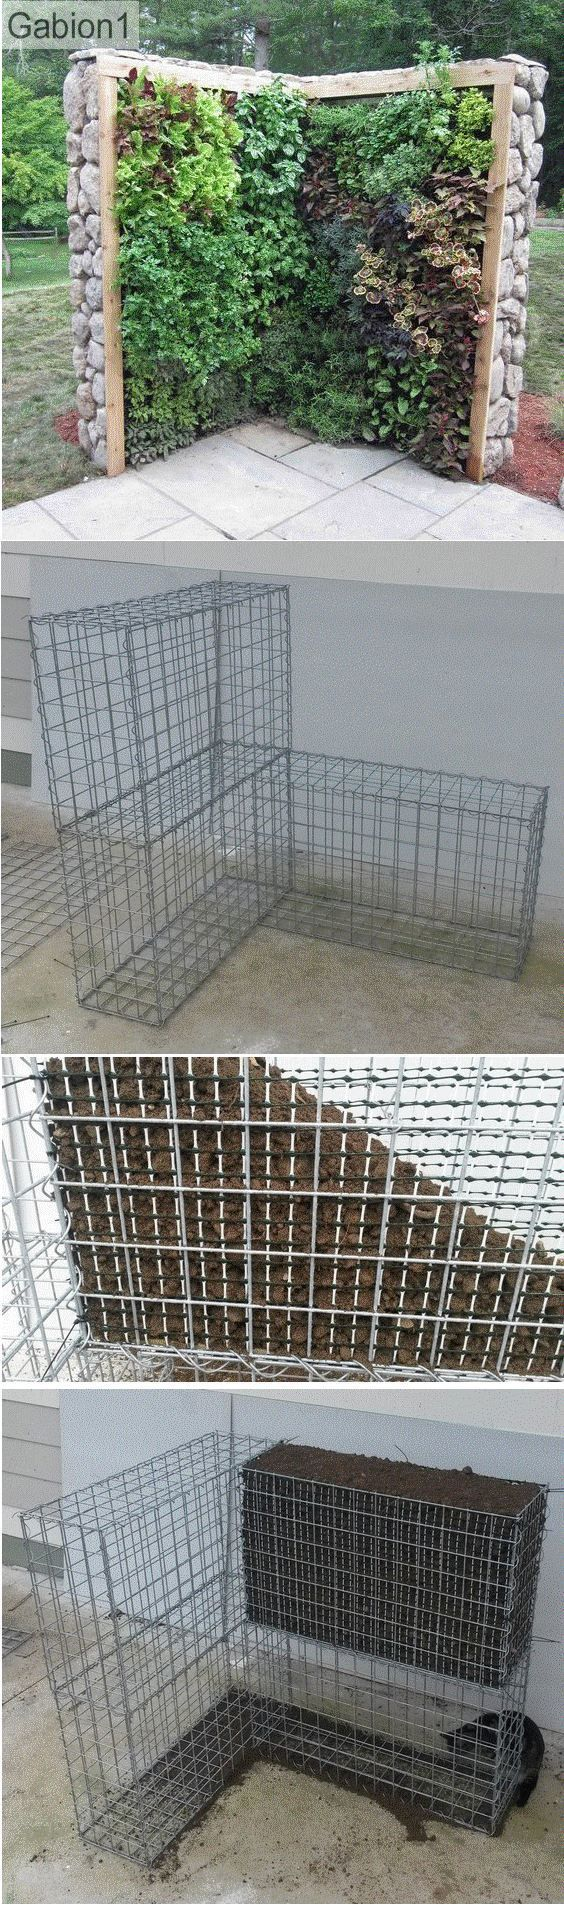 gabion green wall construction steps. Prior to placing the topsoil the gabion is lined with a smaller PVC or wire garden mesh http://www.gabion1.com